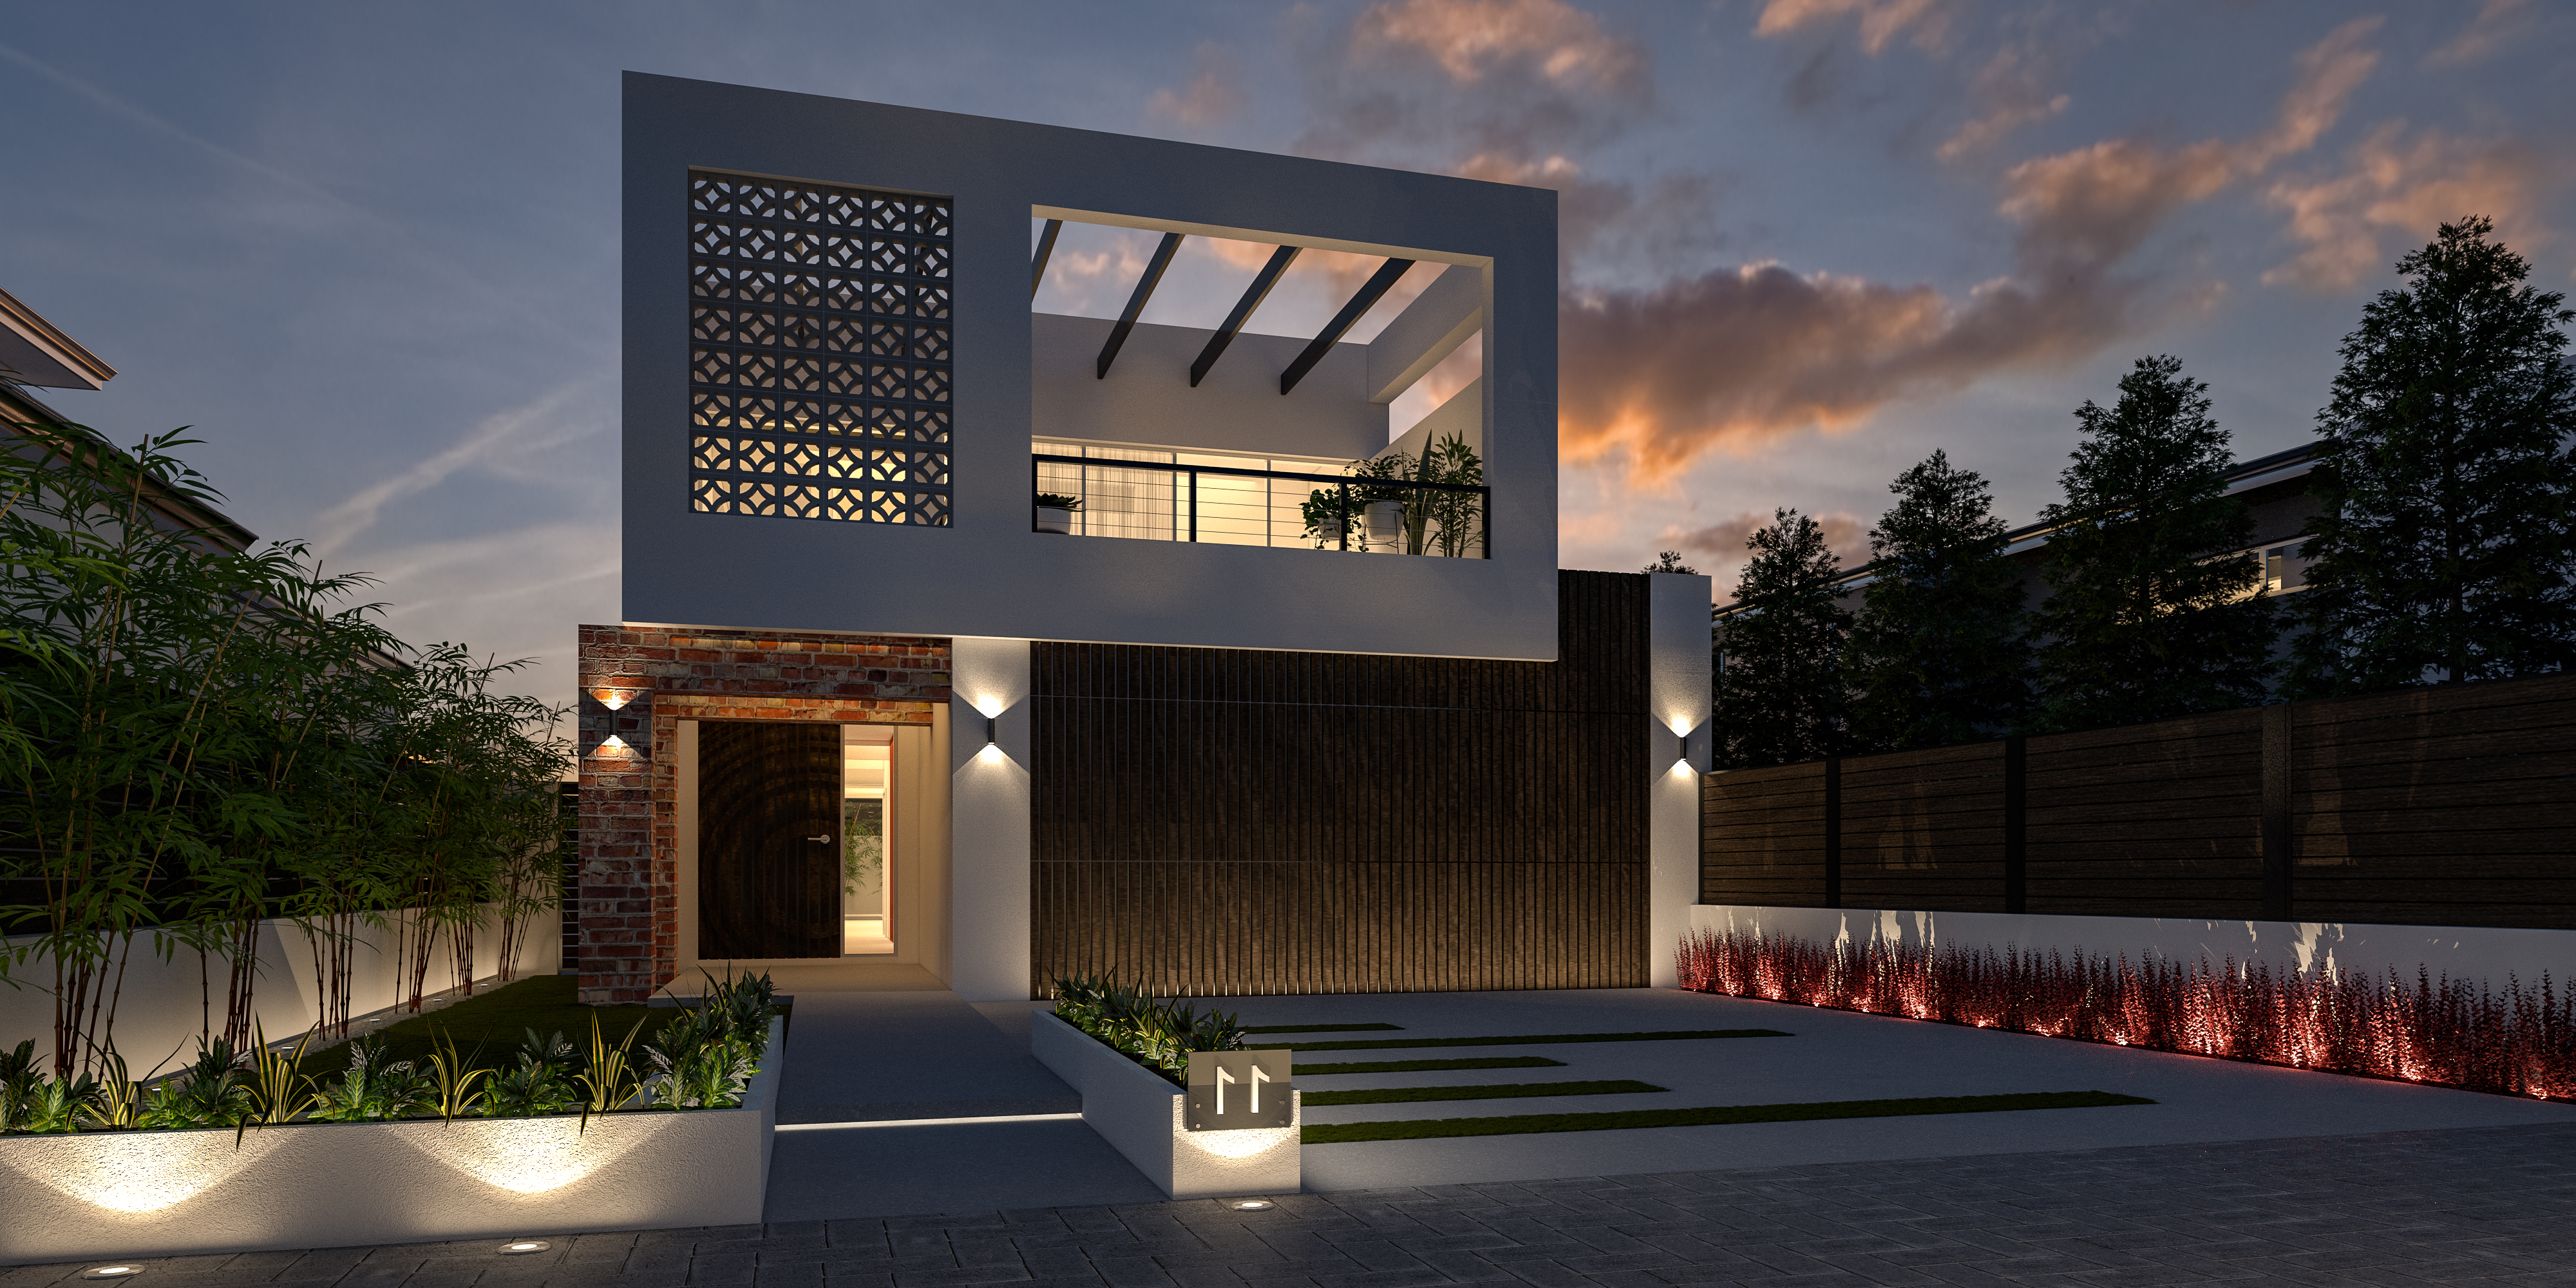 Fontal view of two storey house with white walls, air brics and paved driveway at night with lights burning - Residential Attitudes